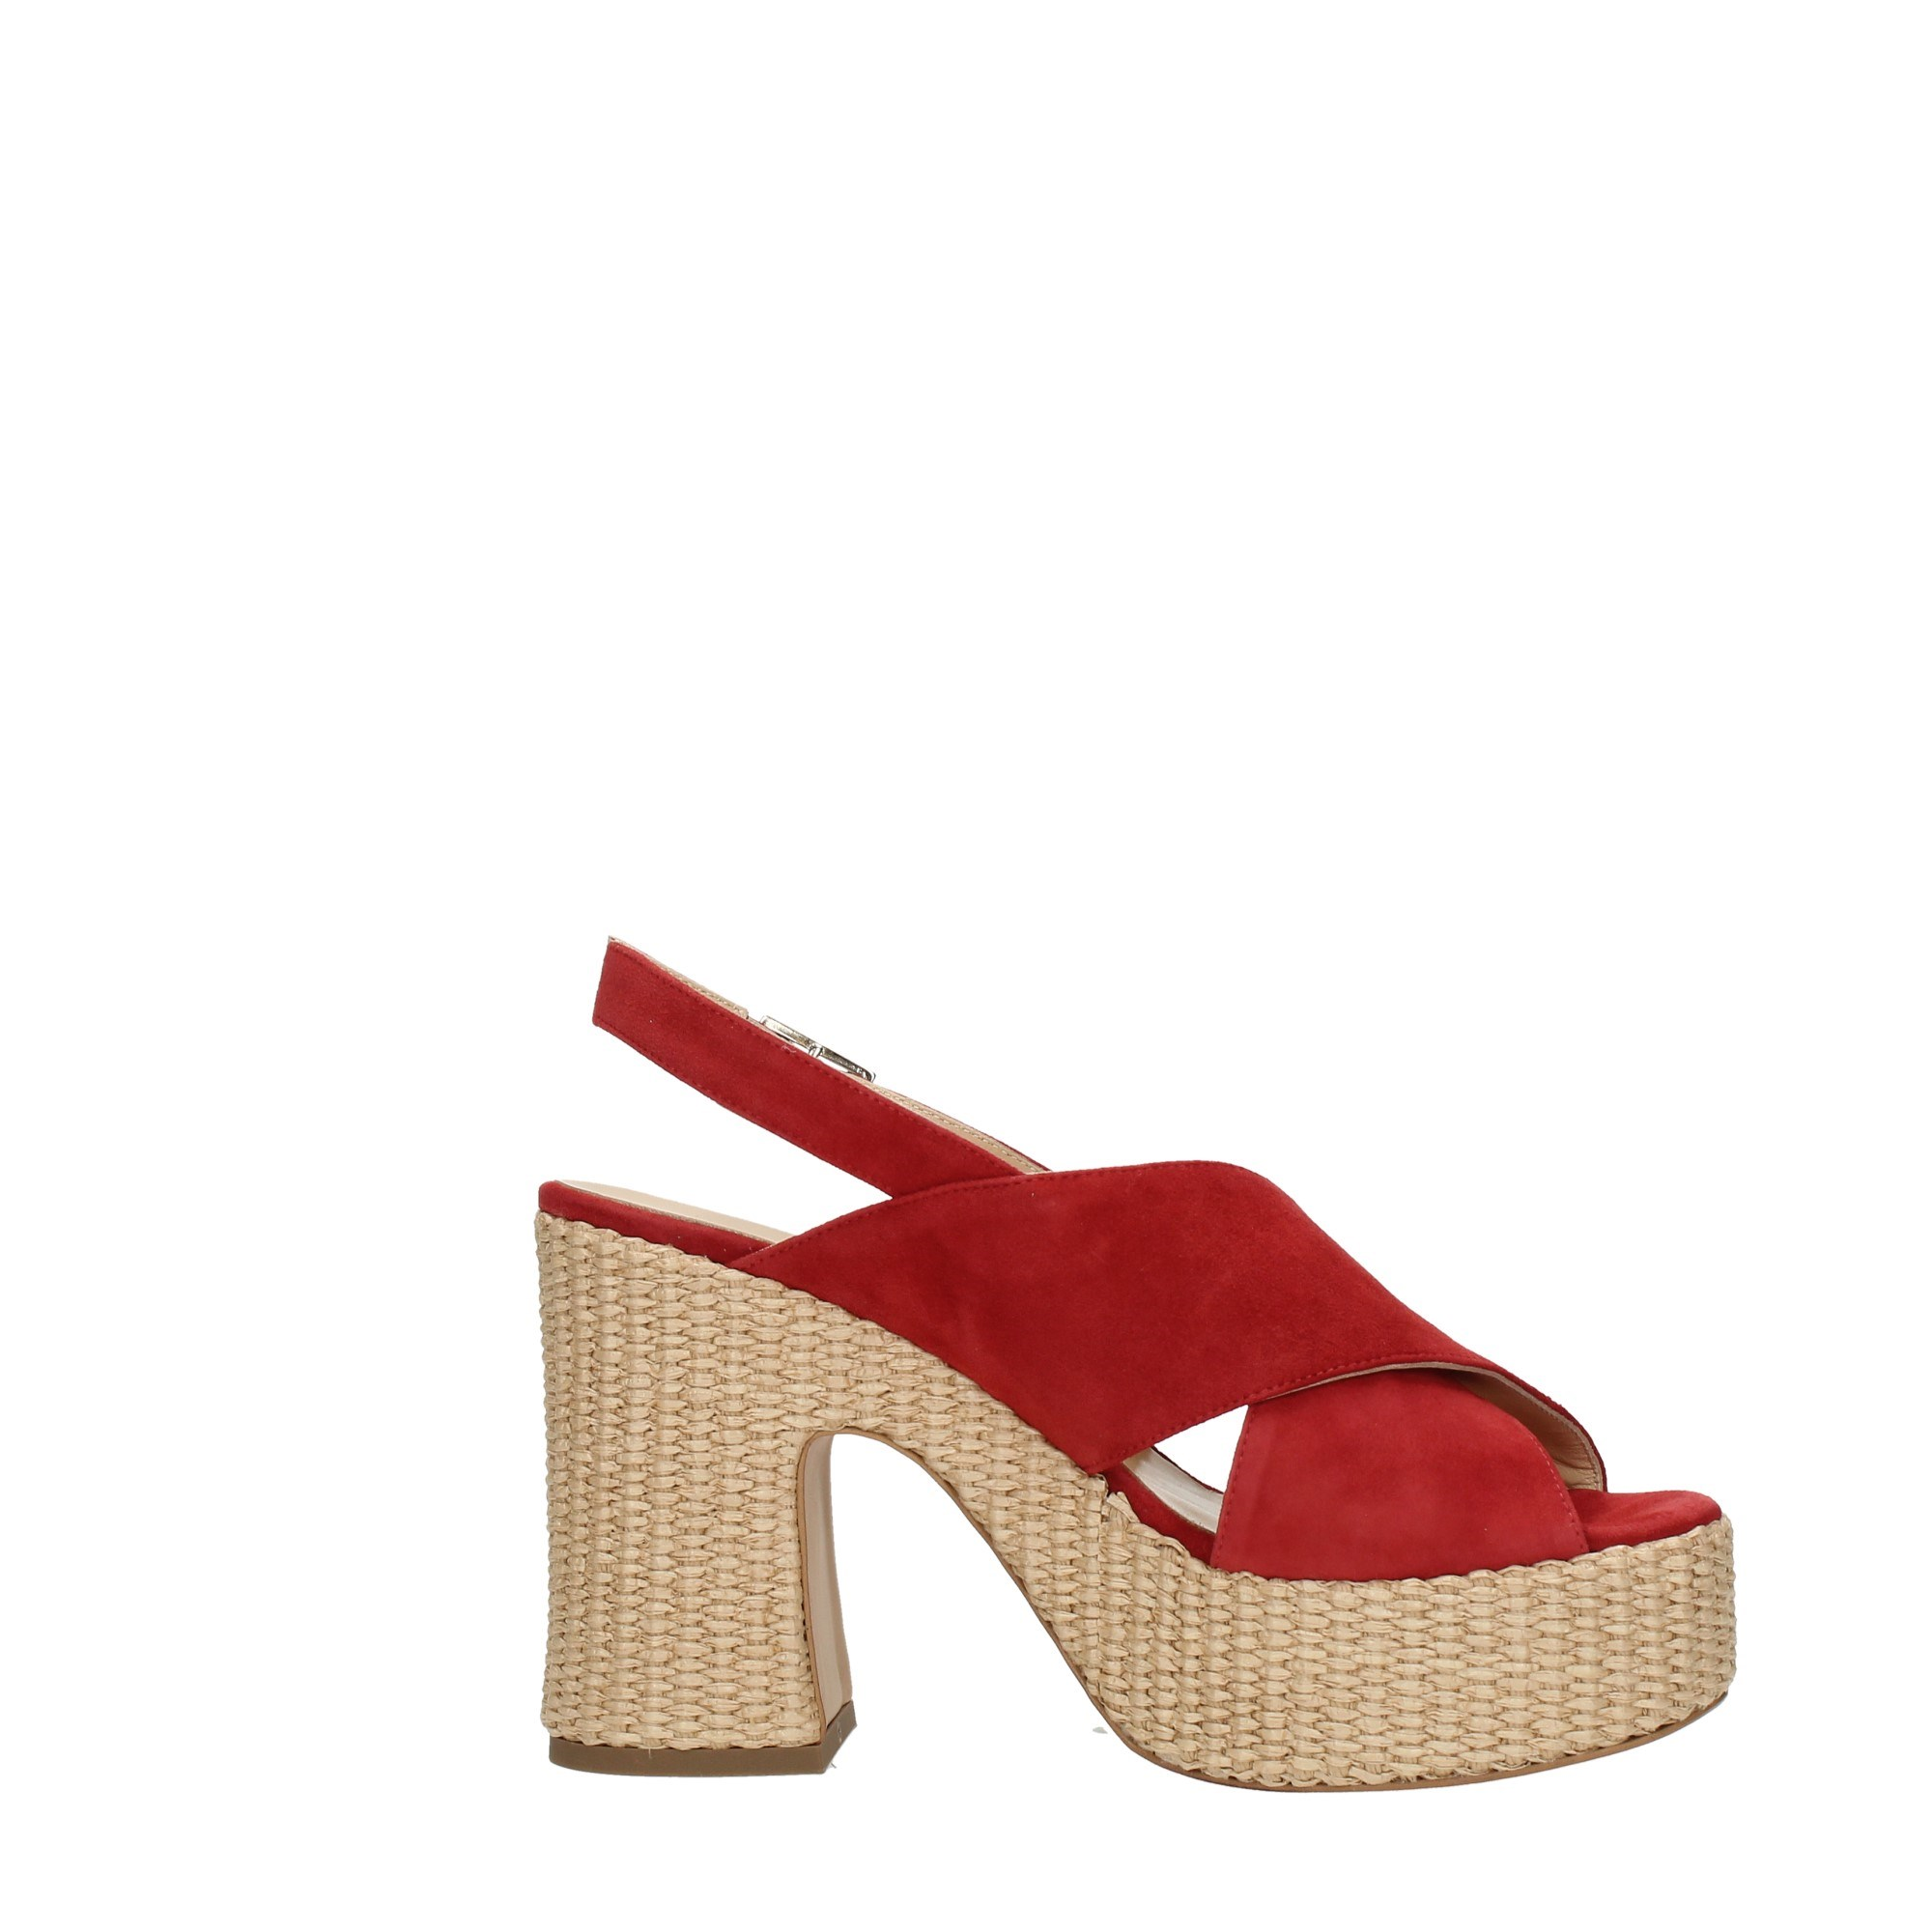 Shada Shoes Women Wedge Sandals Red R116